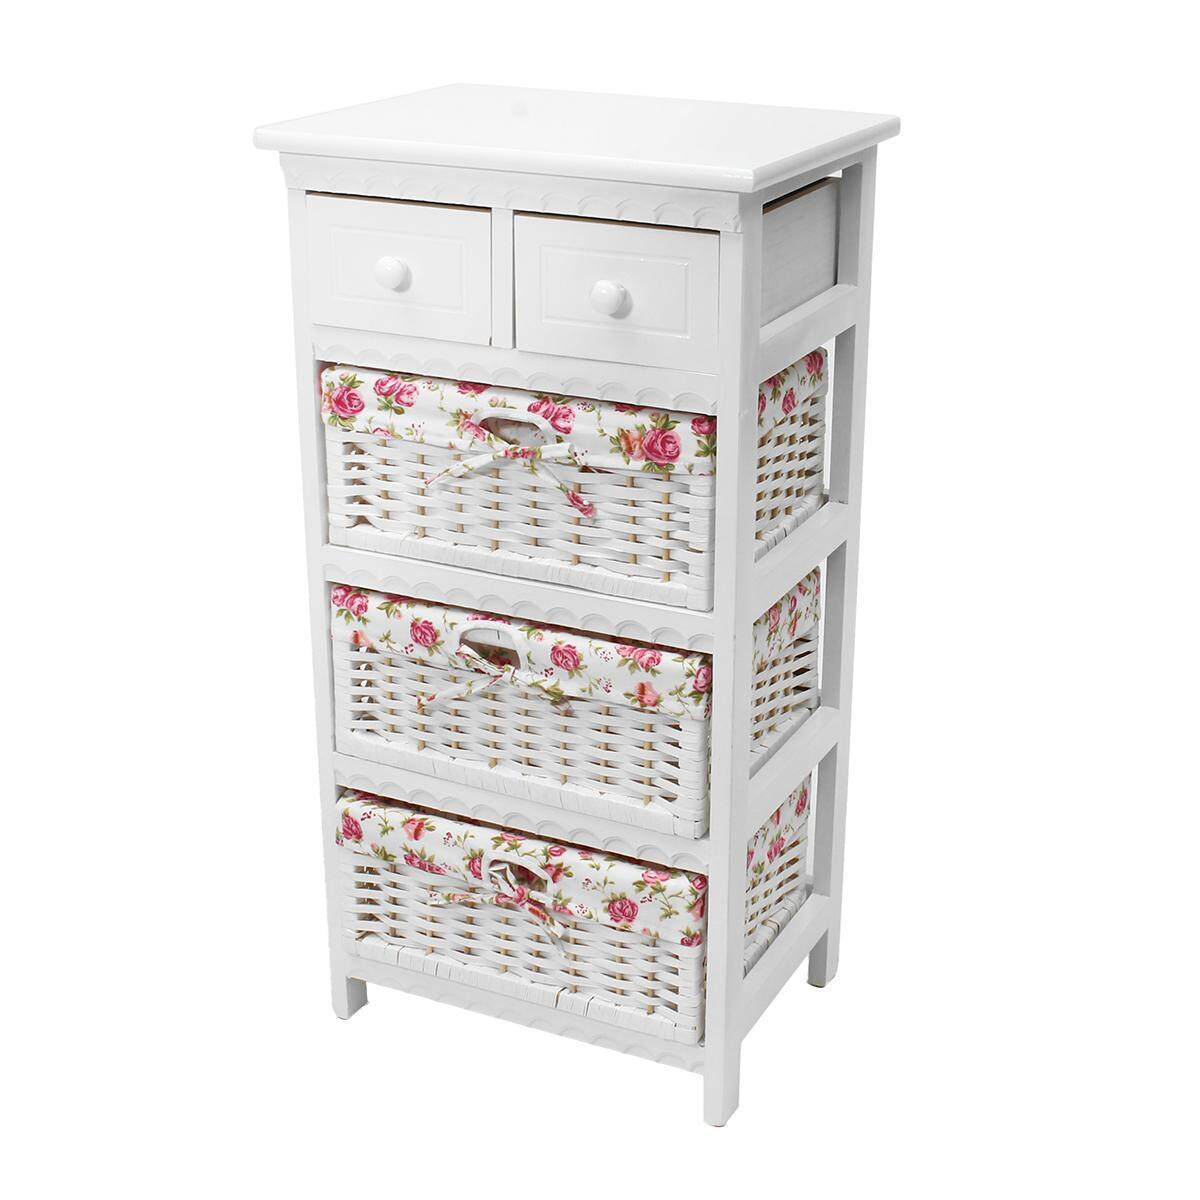 White Wicker Basket Storage Unit Chic Bedside Table Cabinet Chest of Drawers four floors